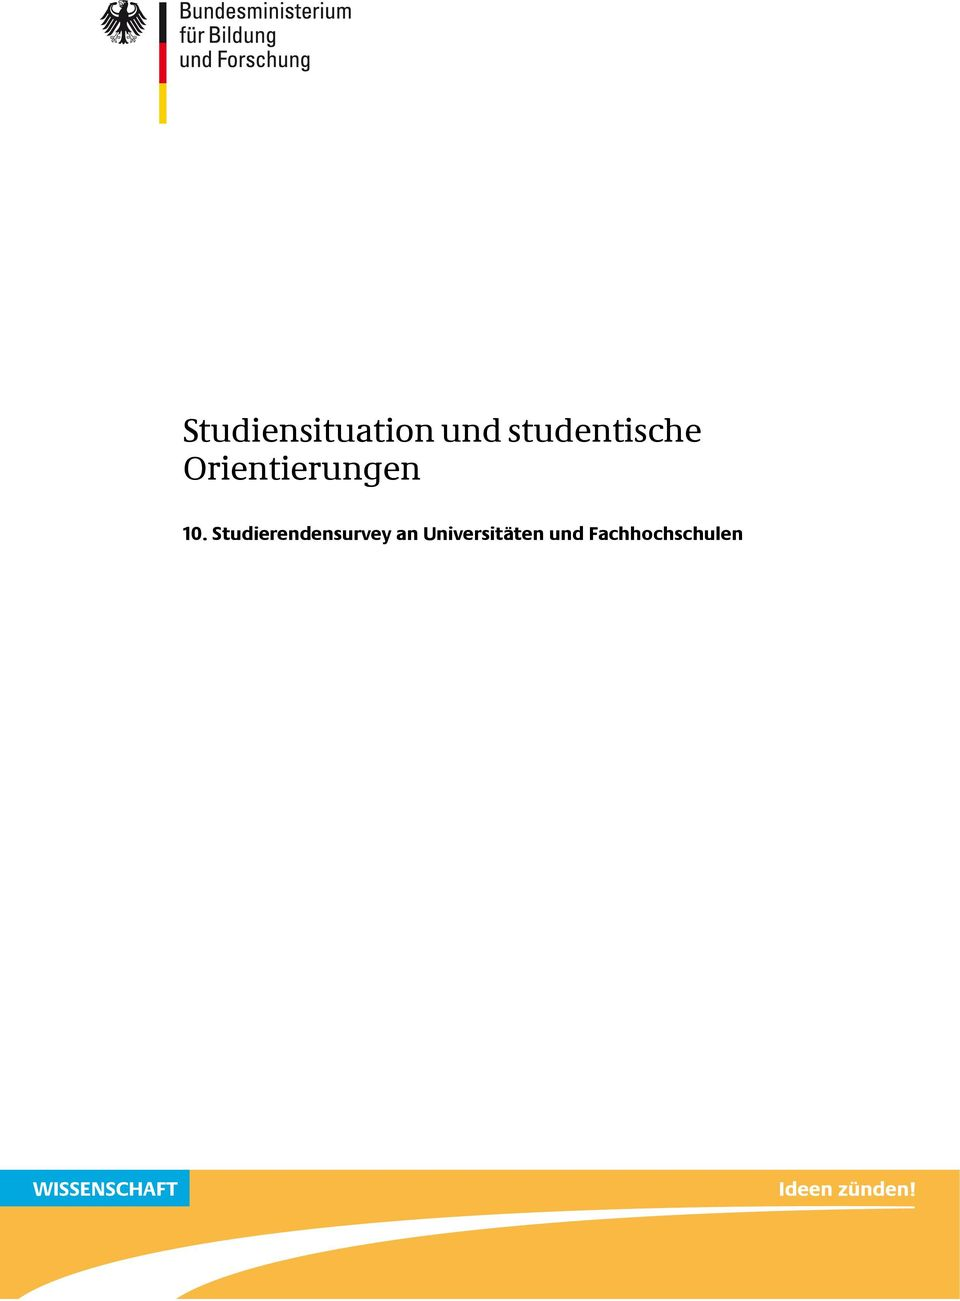 Studierendensurvey an